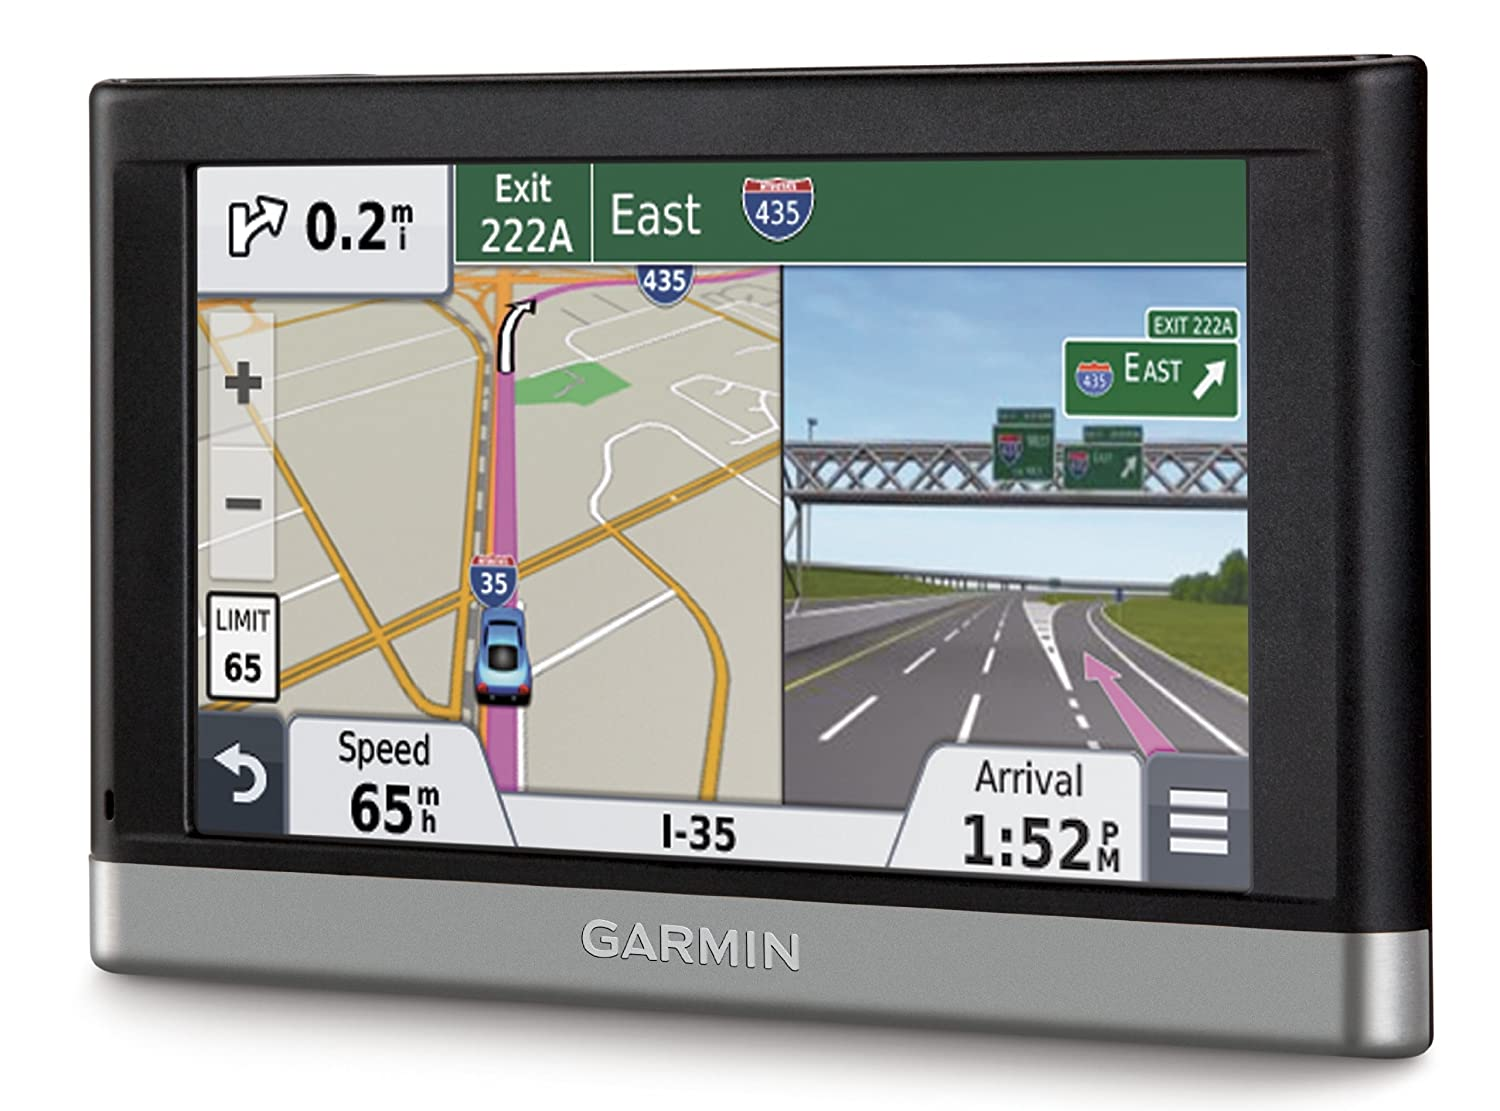 Garmin DriveSmart 51 LMT-S The best car GPS. The best guidance, most intuitive interface, and best voice control system, with Wi-Fi updating and a multi-touch display.